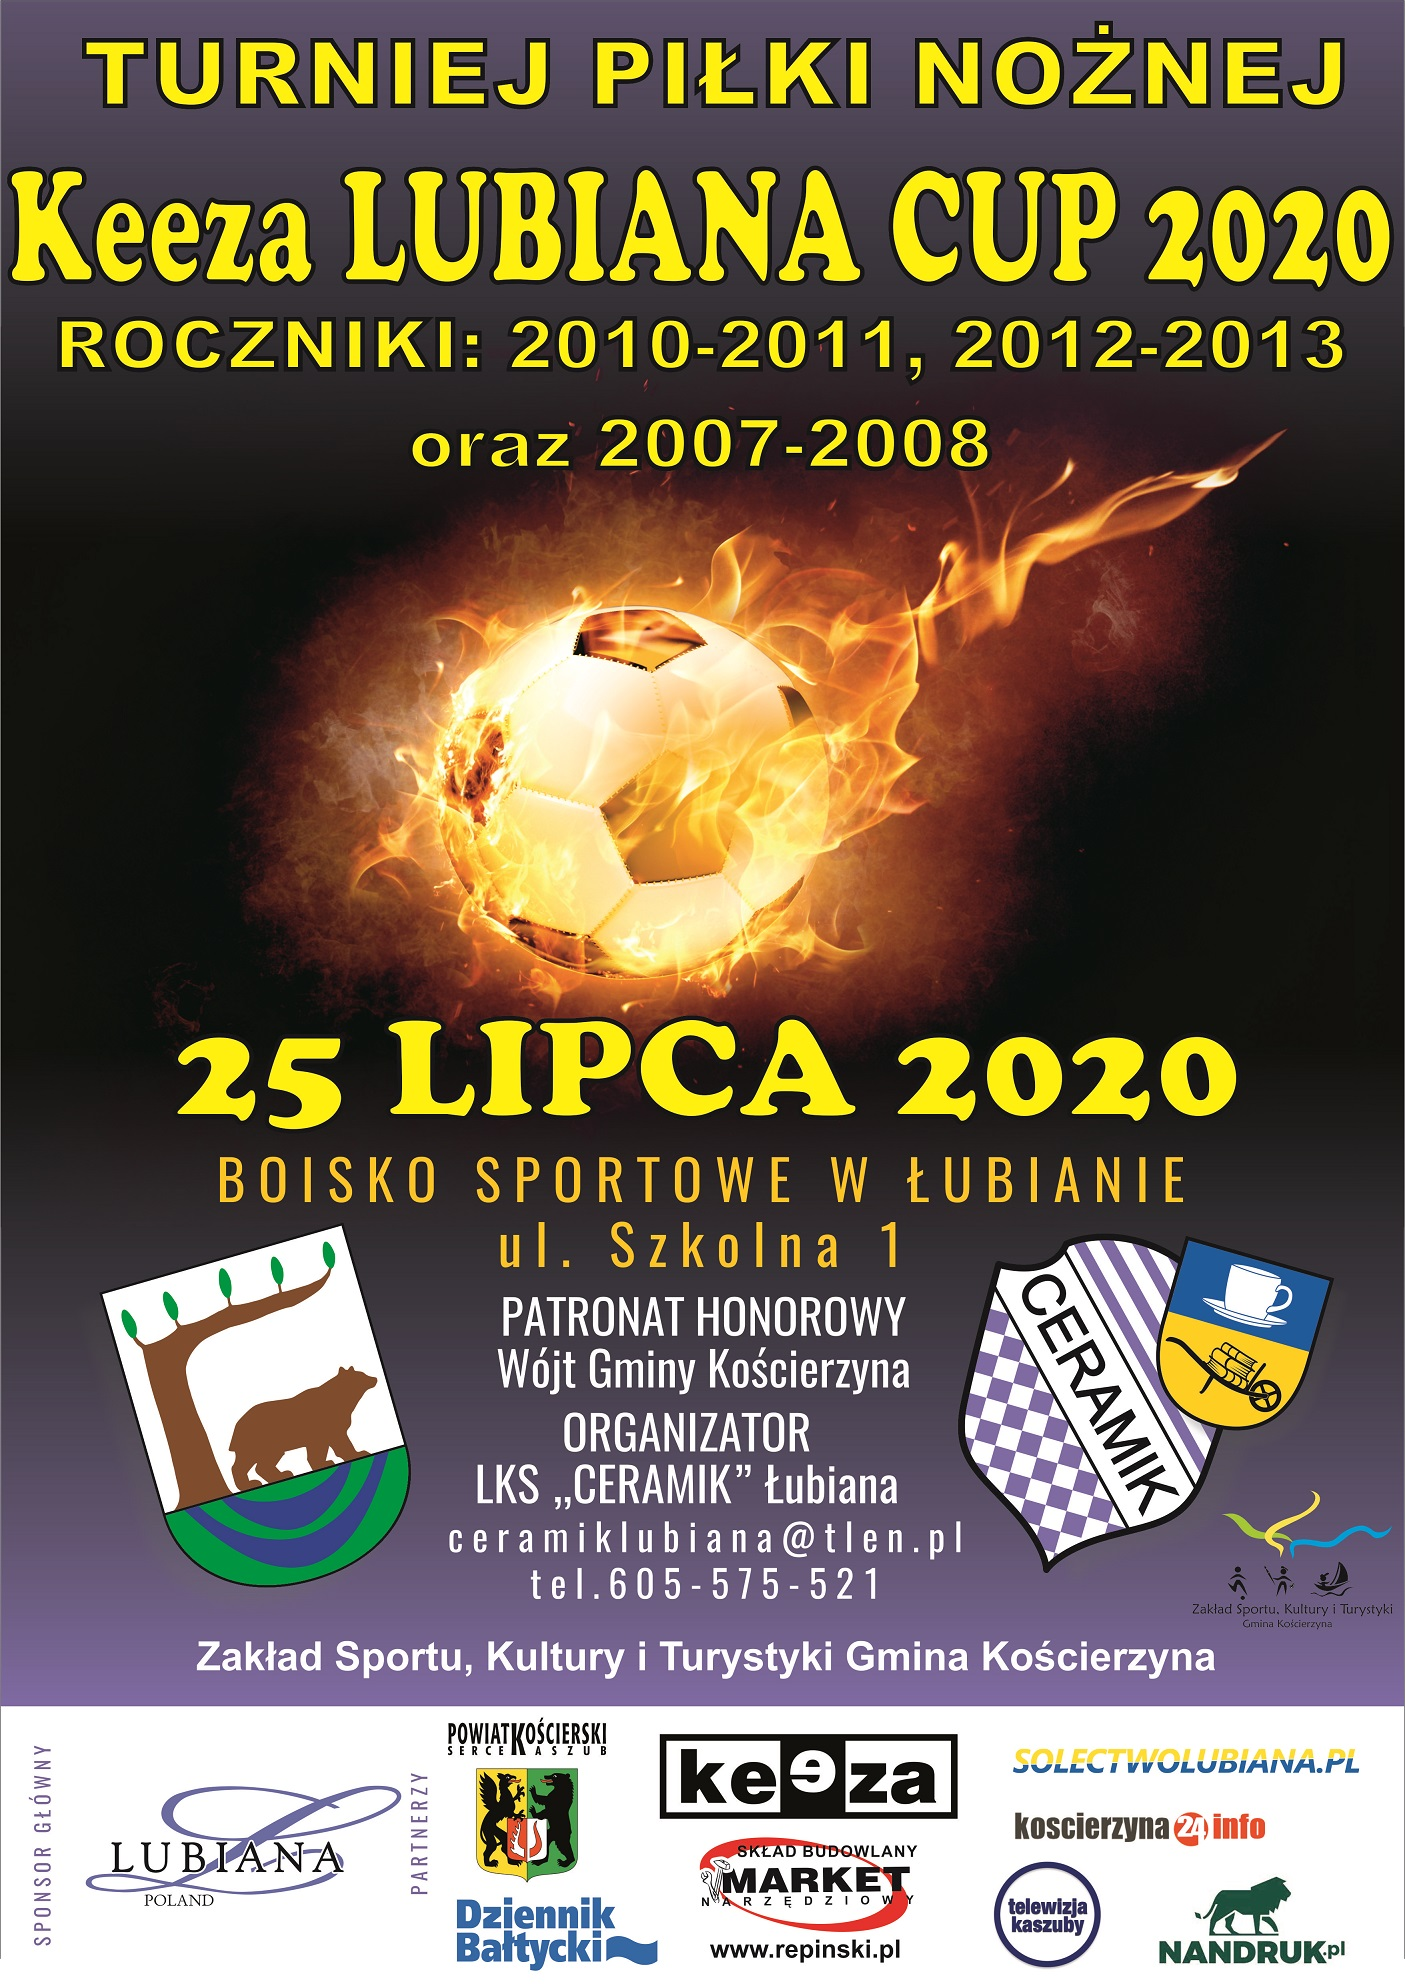 LUBIANA CUP